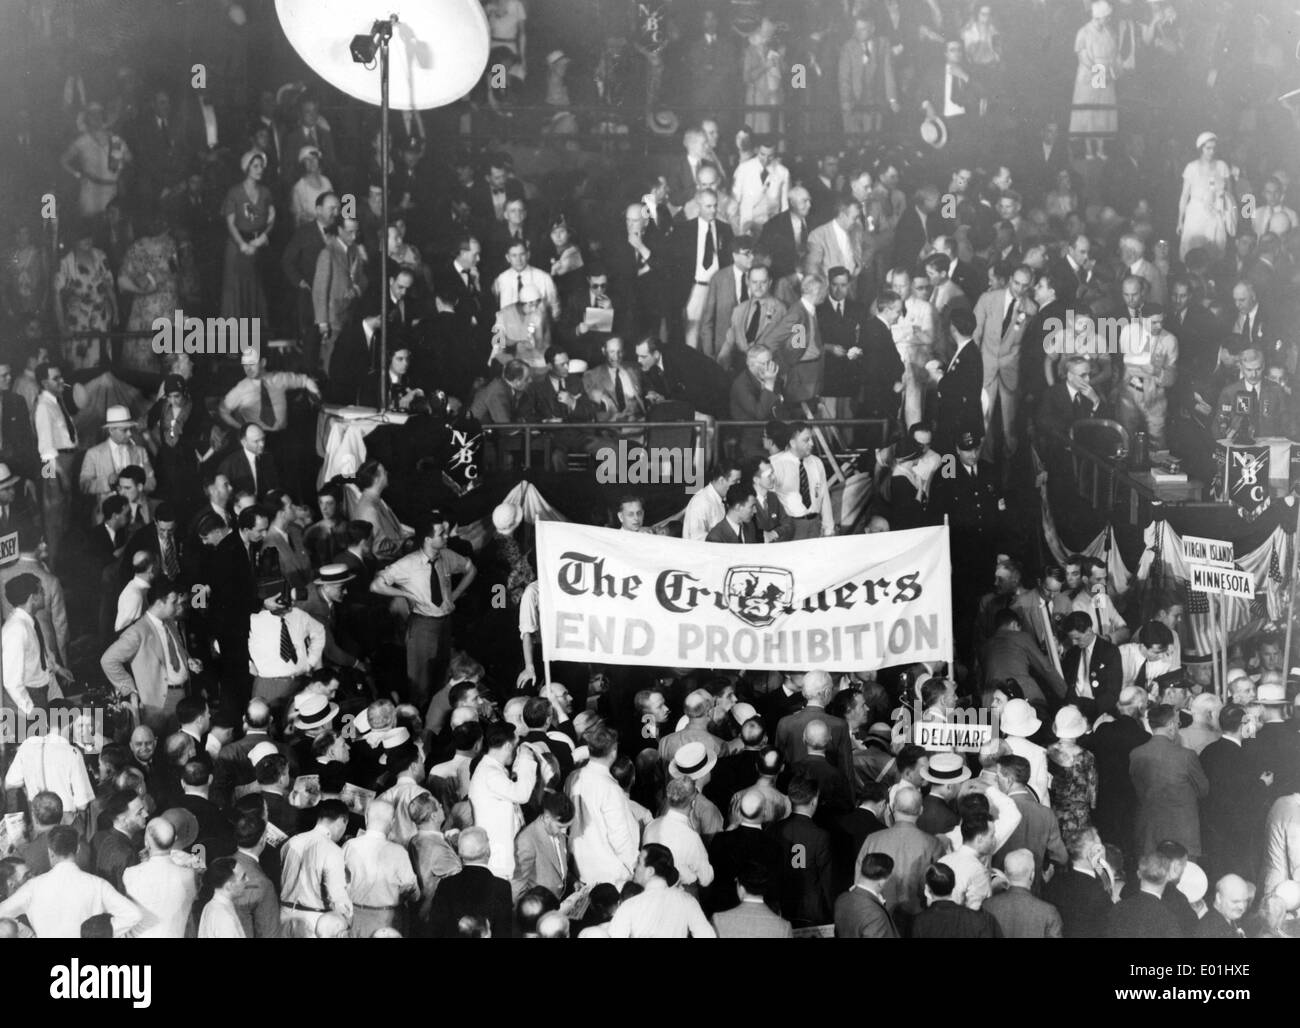 Prohibition: An anti-prohibition movement, the Crusaders, in Chicago, 1932 Stock Photo